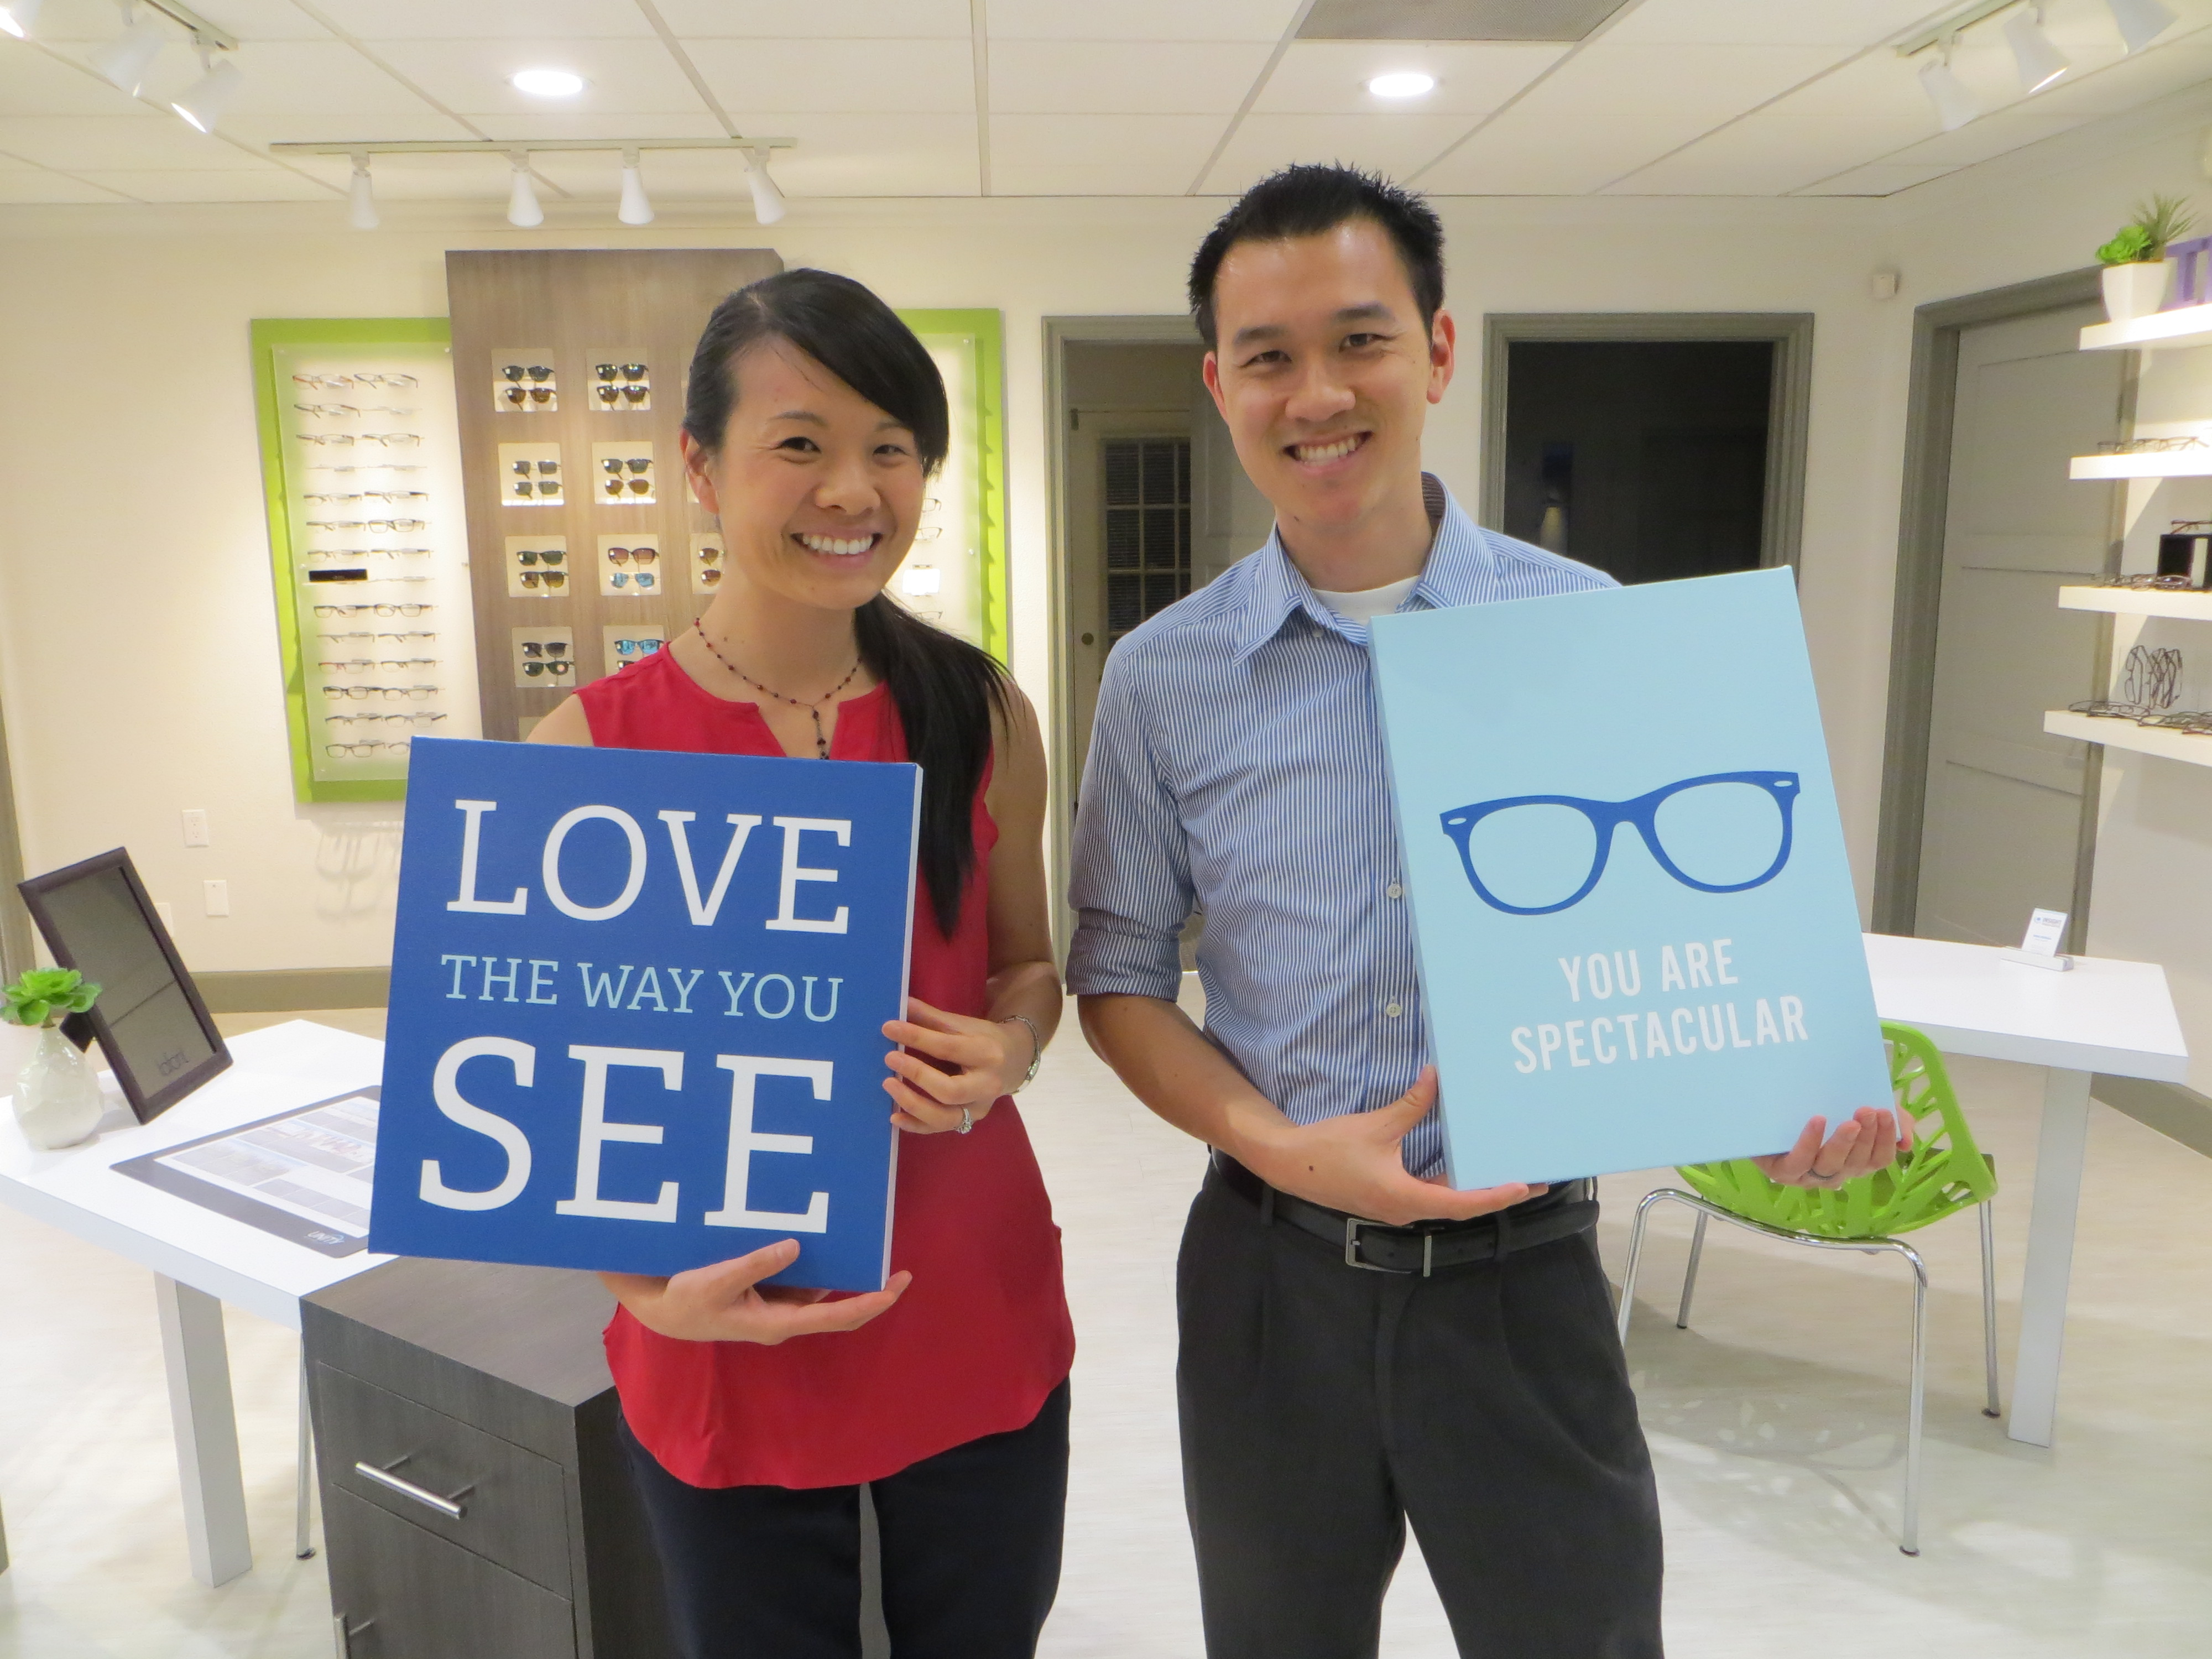 Co-owners of Insight Vision Center Optometry, Dr. Valerie Lam and Dr. Thanh Mai.